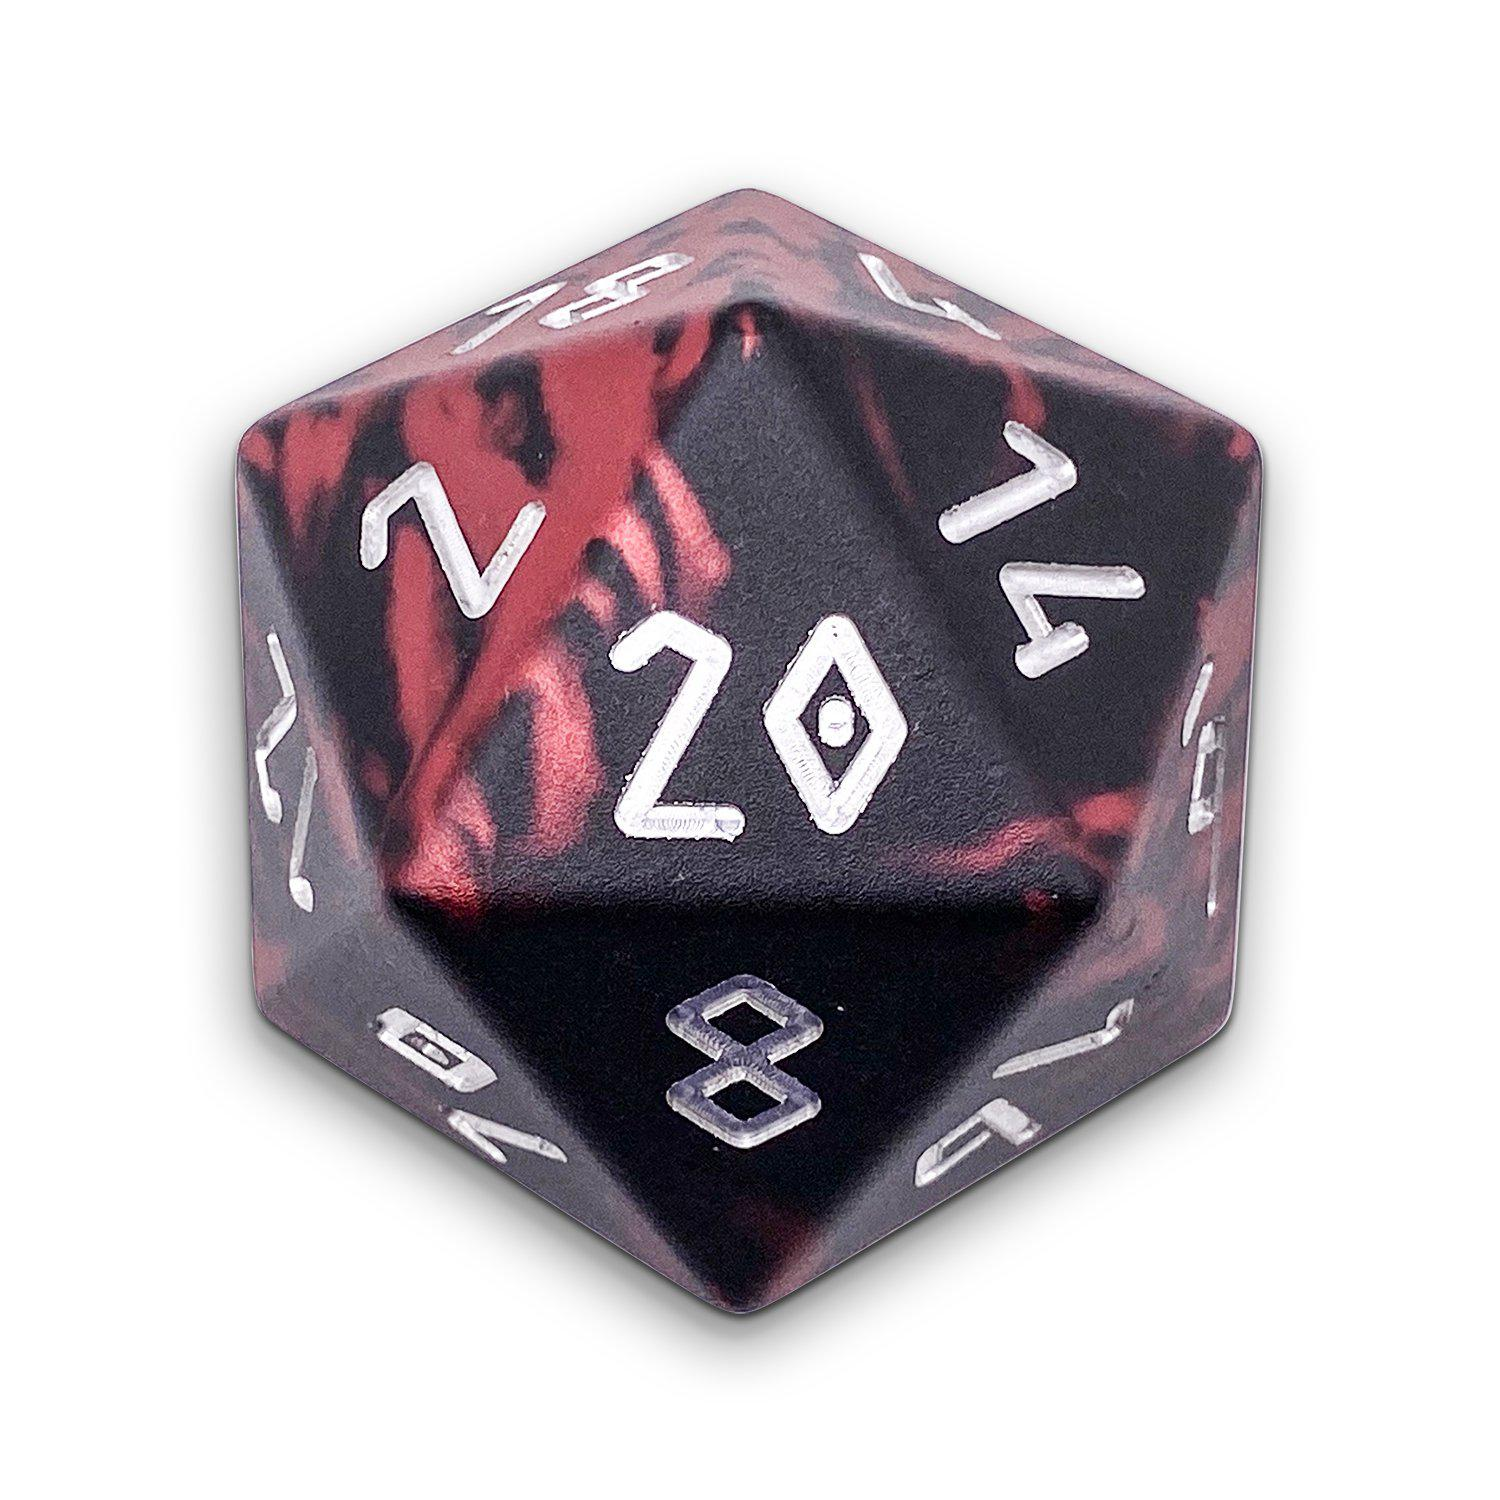 Demons Blood - Wondrous Boulder® 55mm D20 6063 Aircraft Grade Aluminum Metal Die